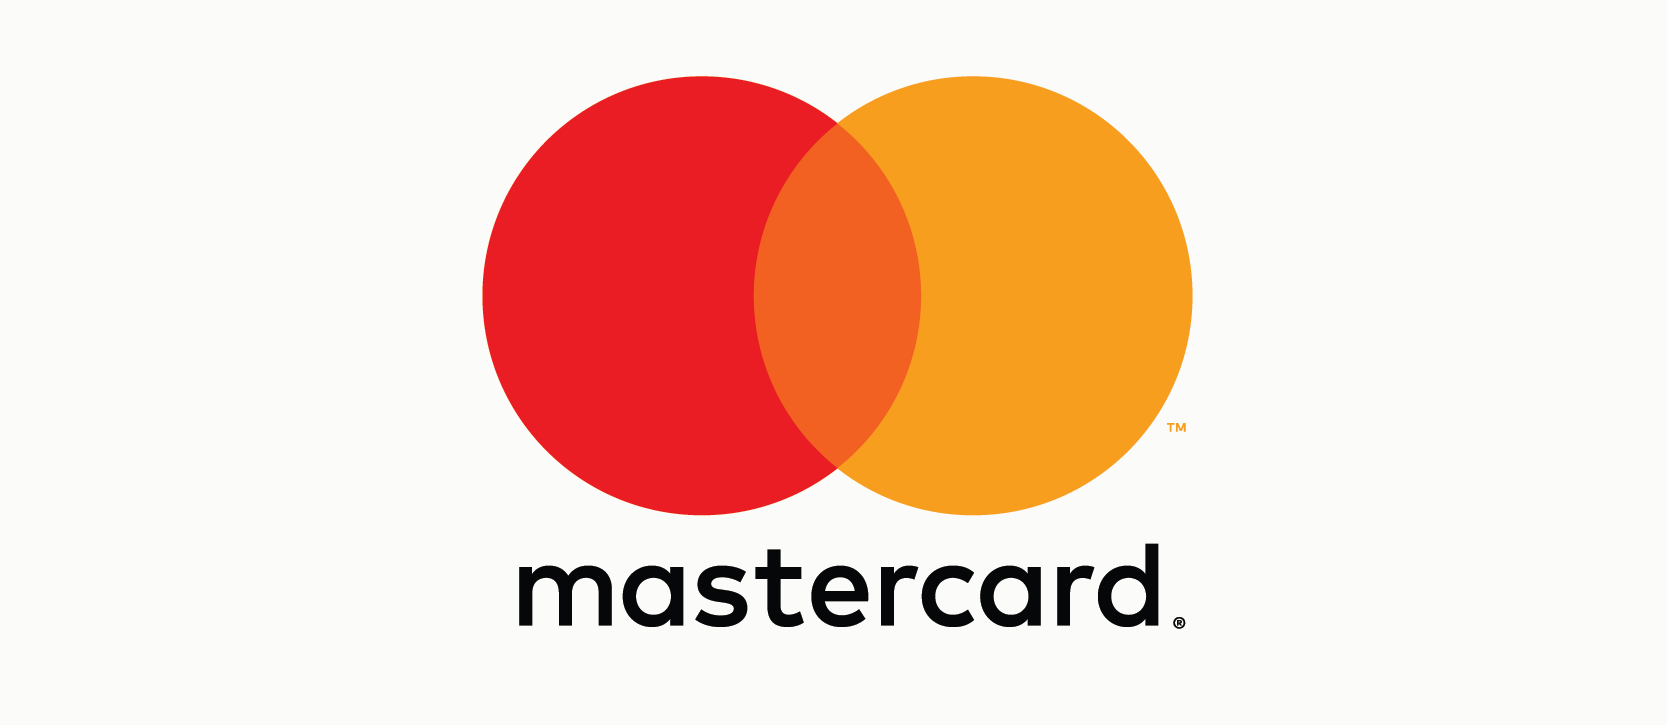 mastercard in